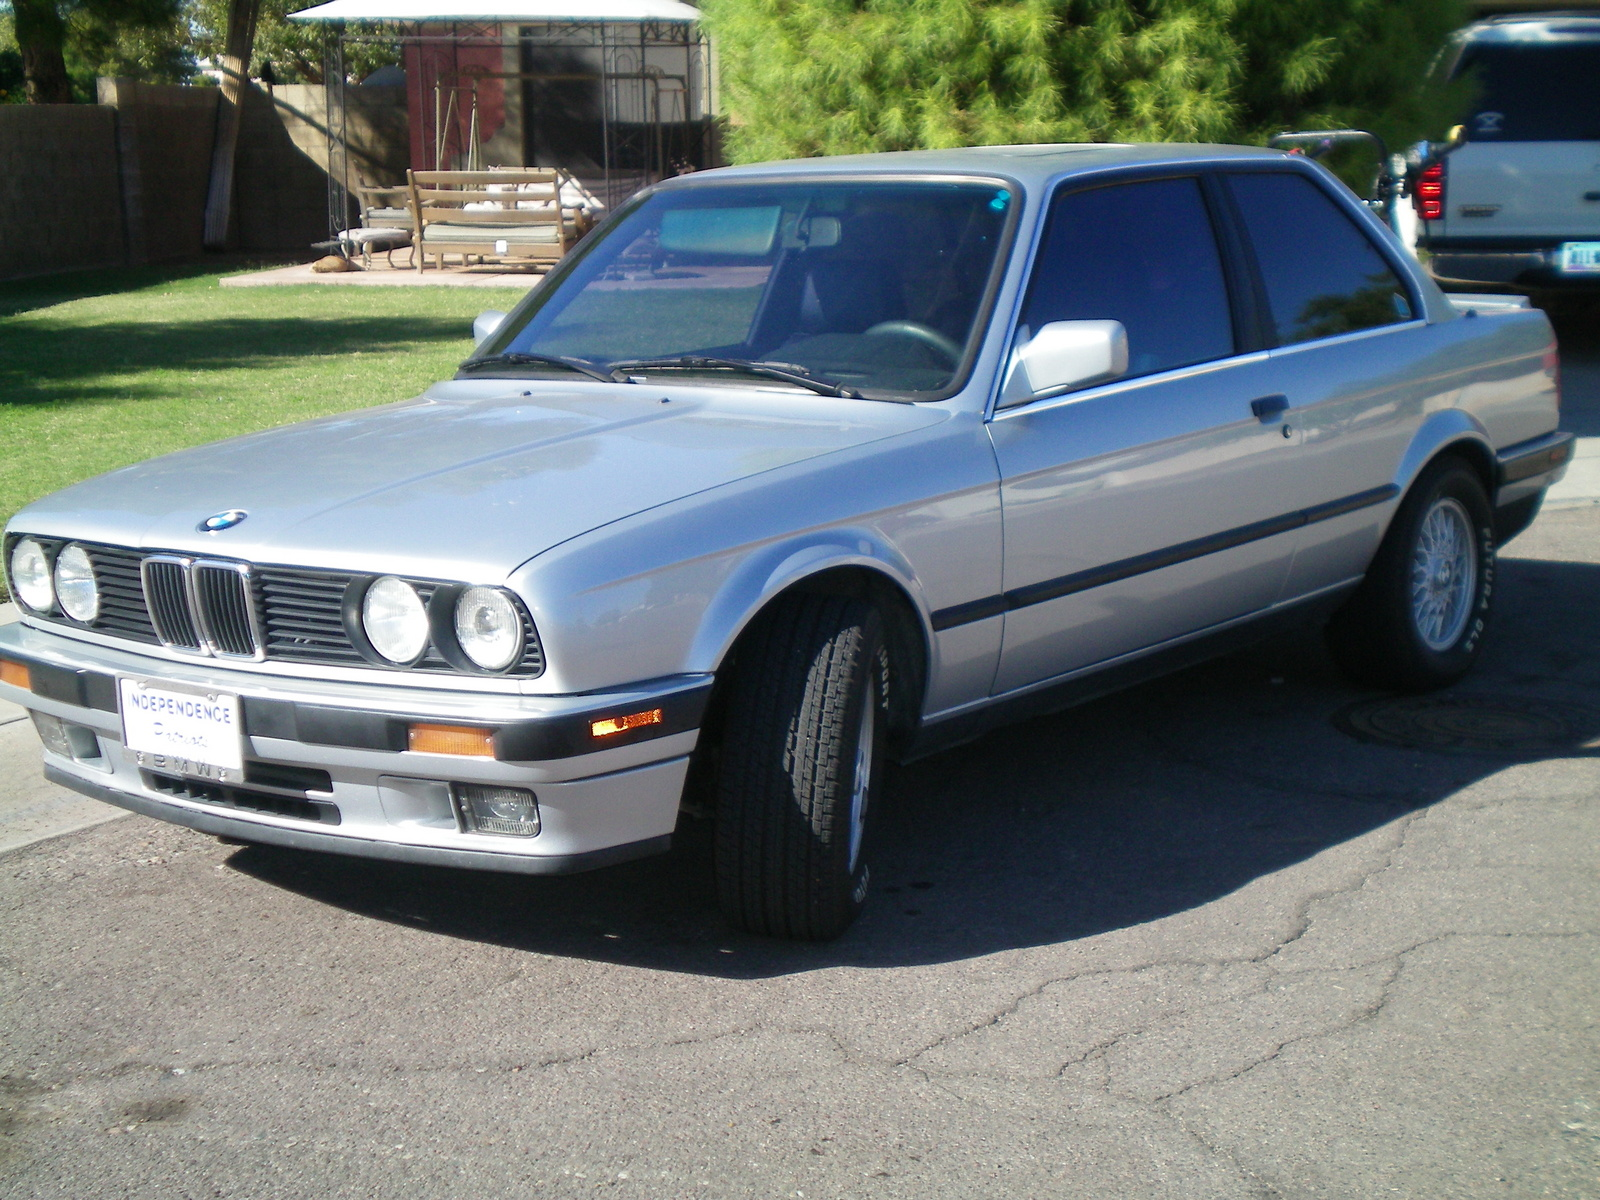 BMW 3 series 318is 1988 photo - 3